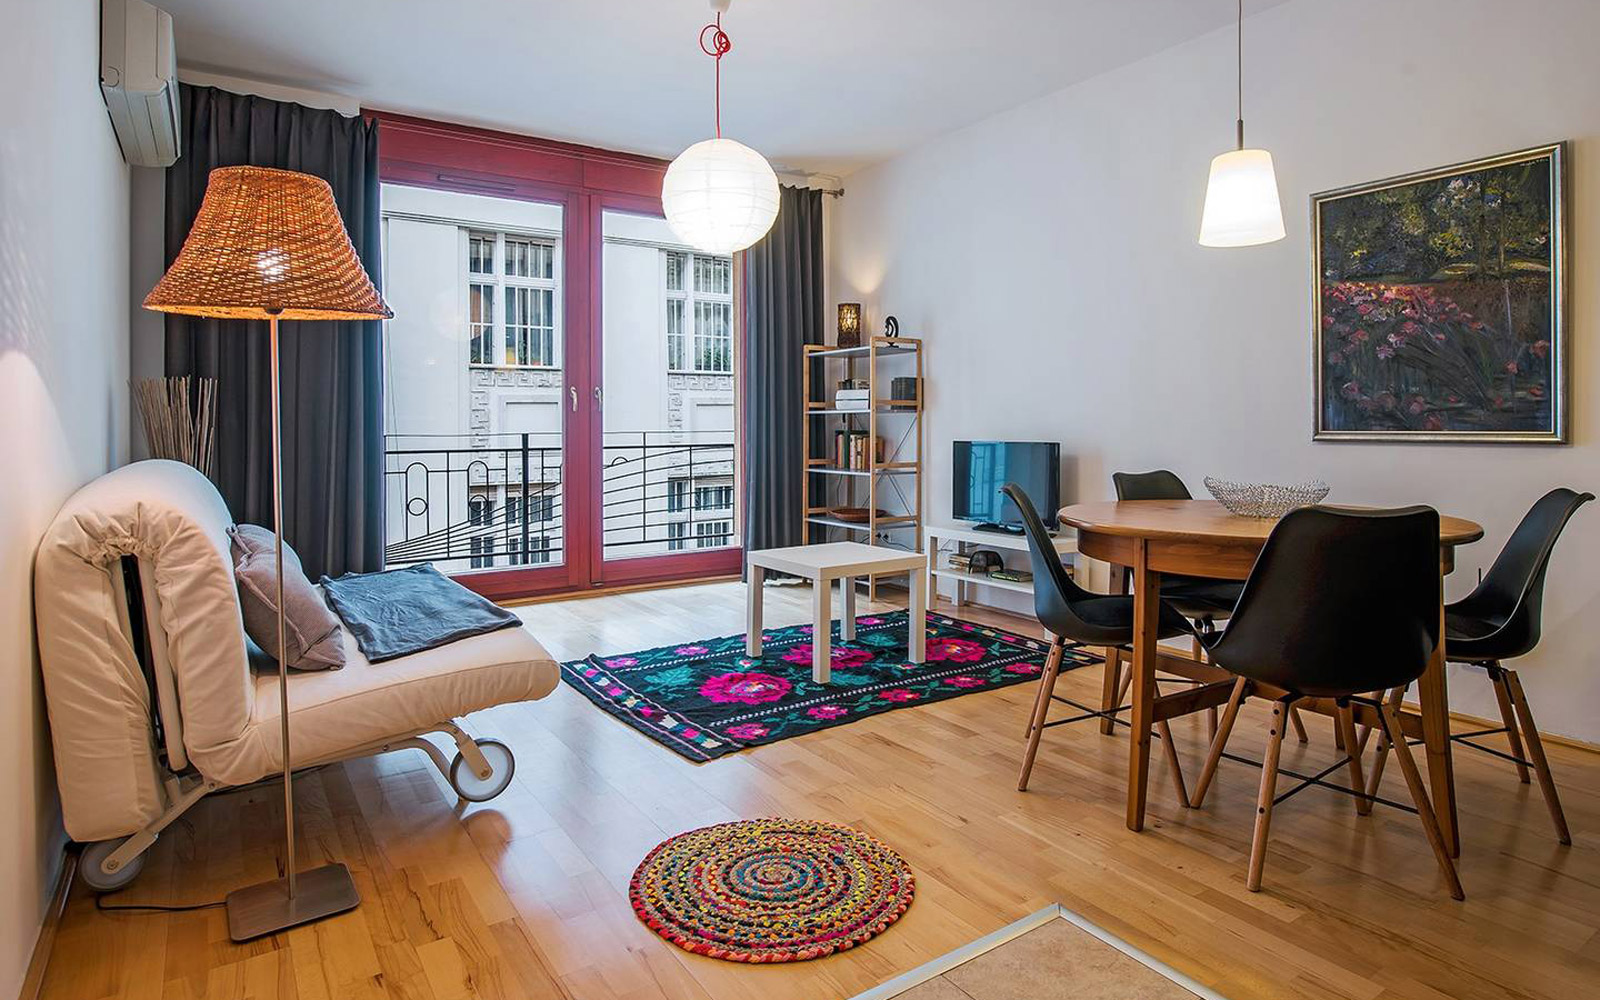 Airbnb house in Budapest, Hungary